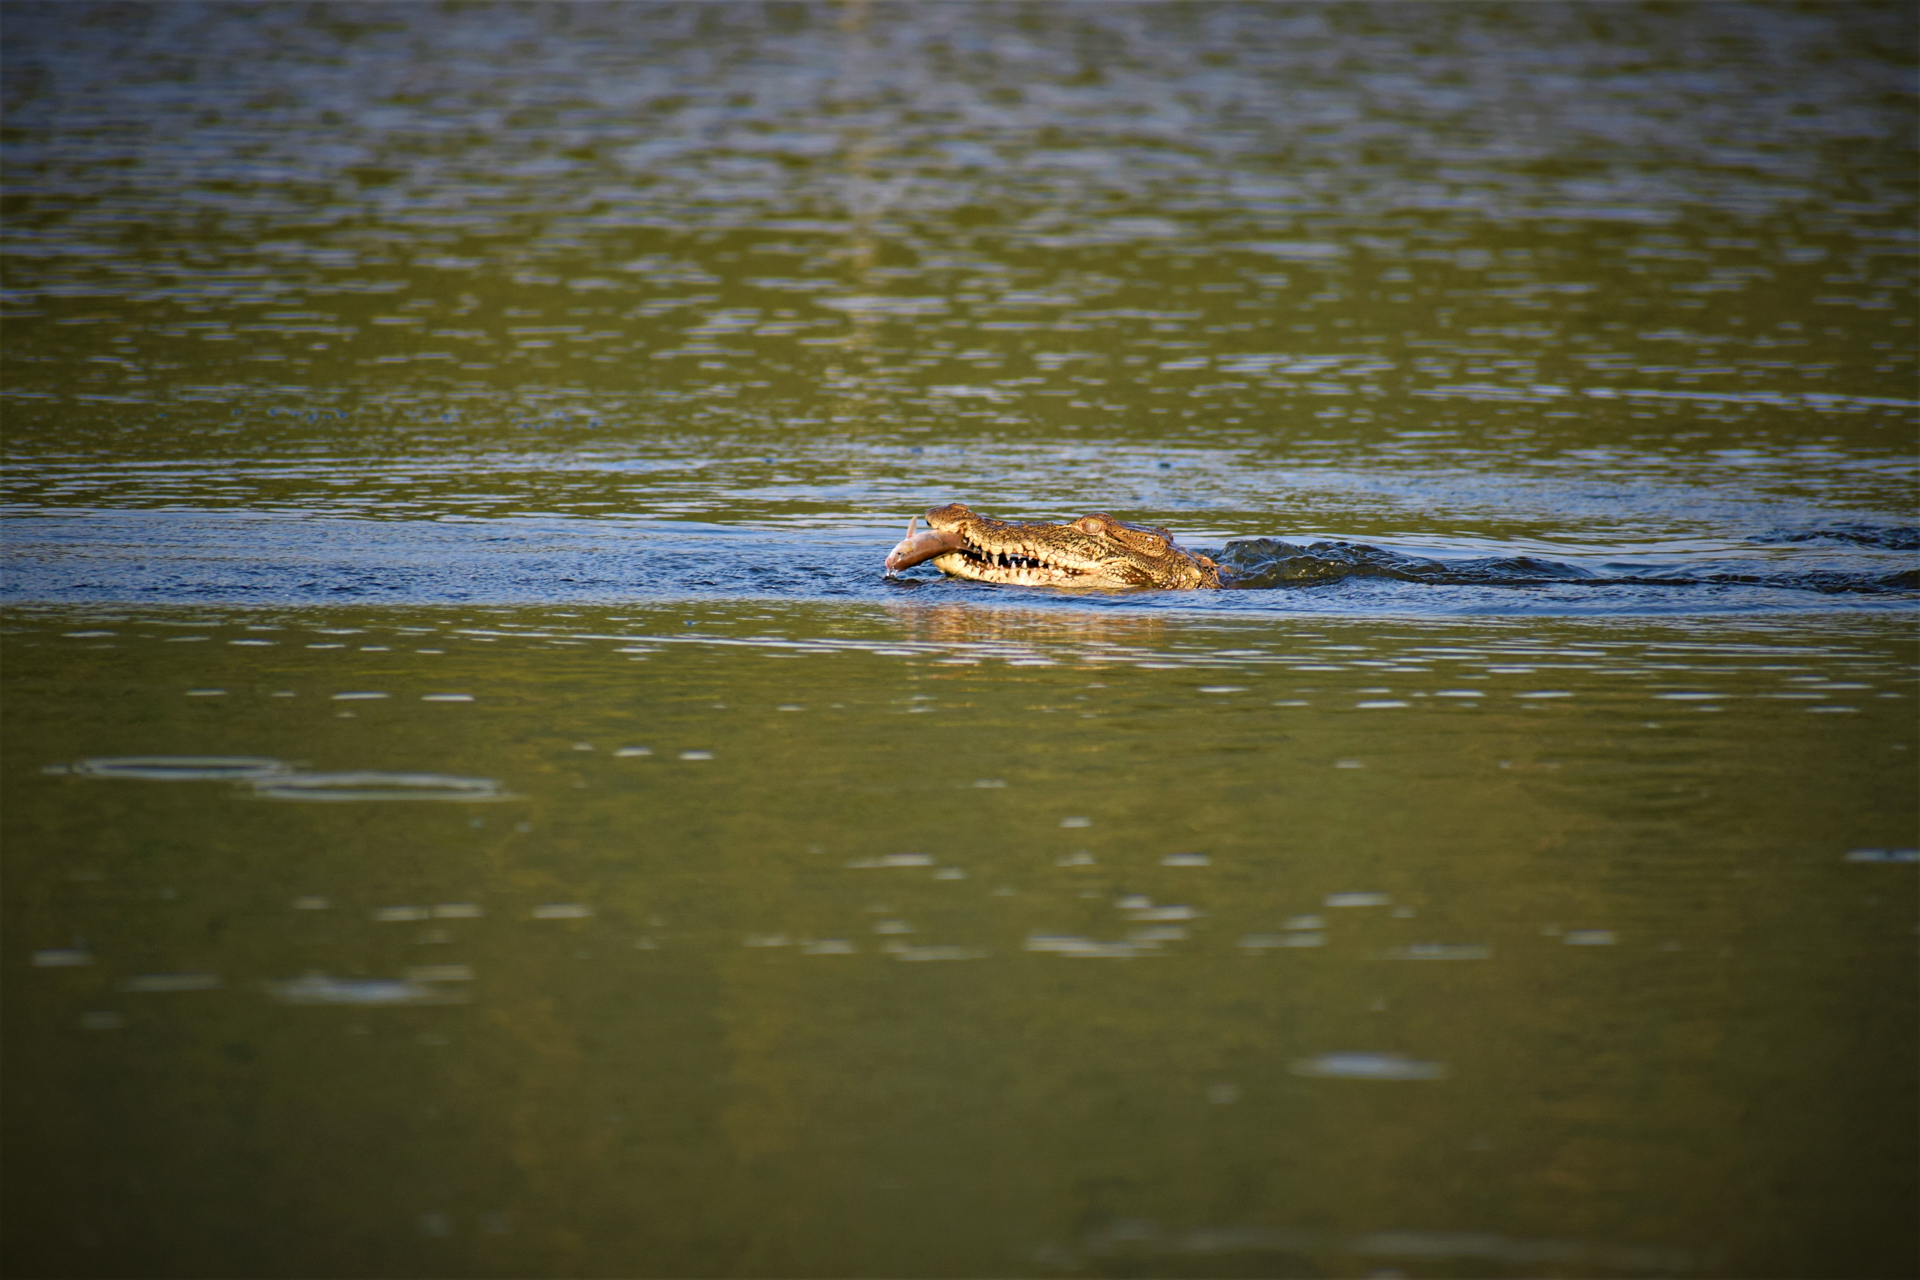 Muggers (marsh crocodiles) primarily feed on fish found in the reservoir but, if necessary, can survive for months without eating. Once water levels in the reservoir recede, they disperse to other waterbodies nearby.